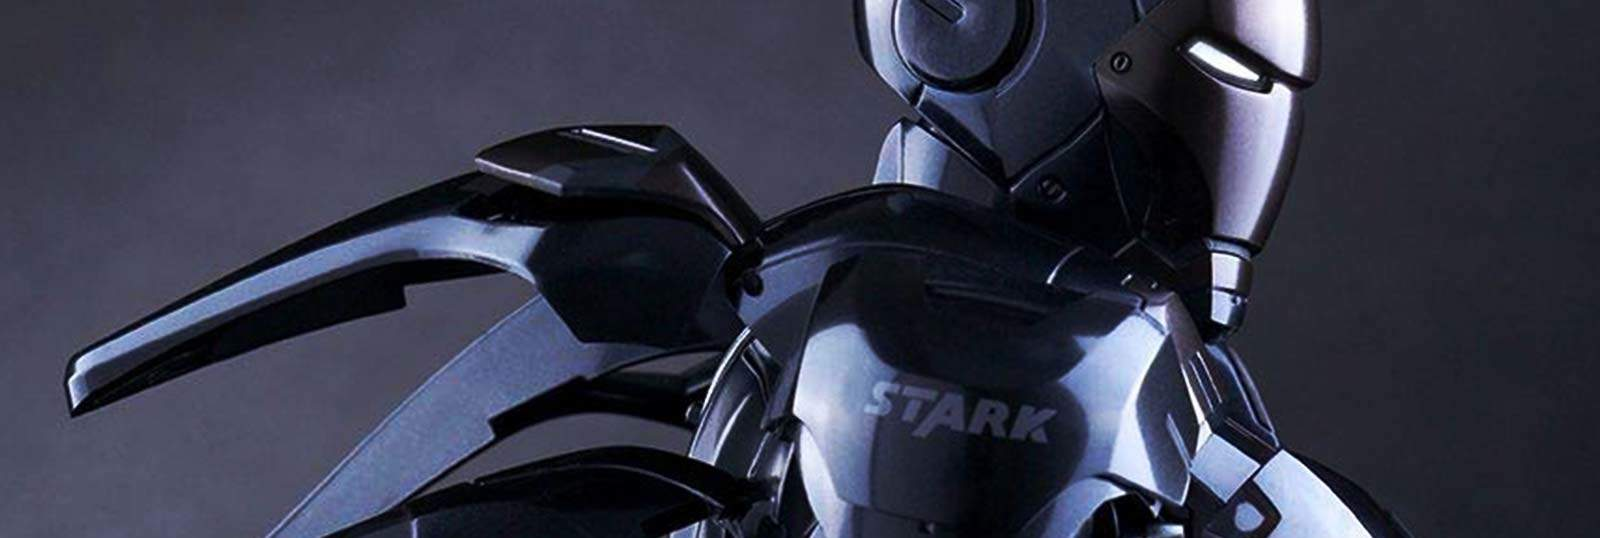 Hot Toys Iron Man Mark VII Stealth Mode Version Infiltrates Collectors Hearts